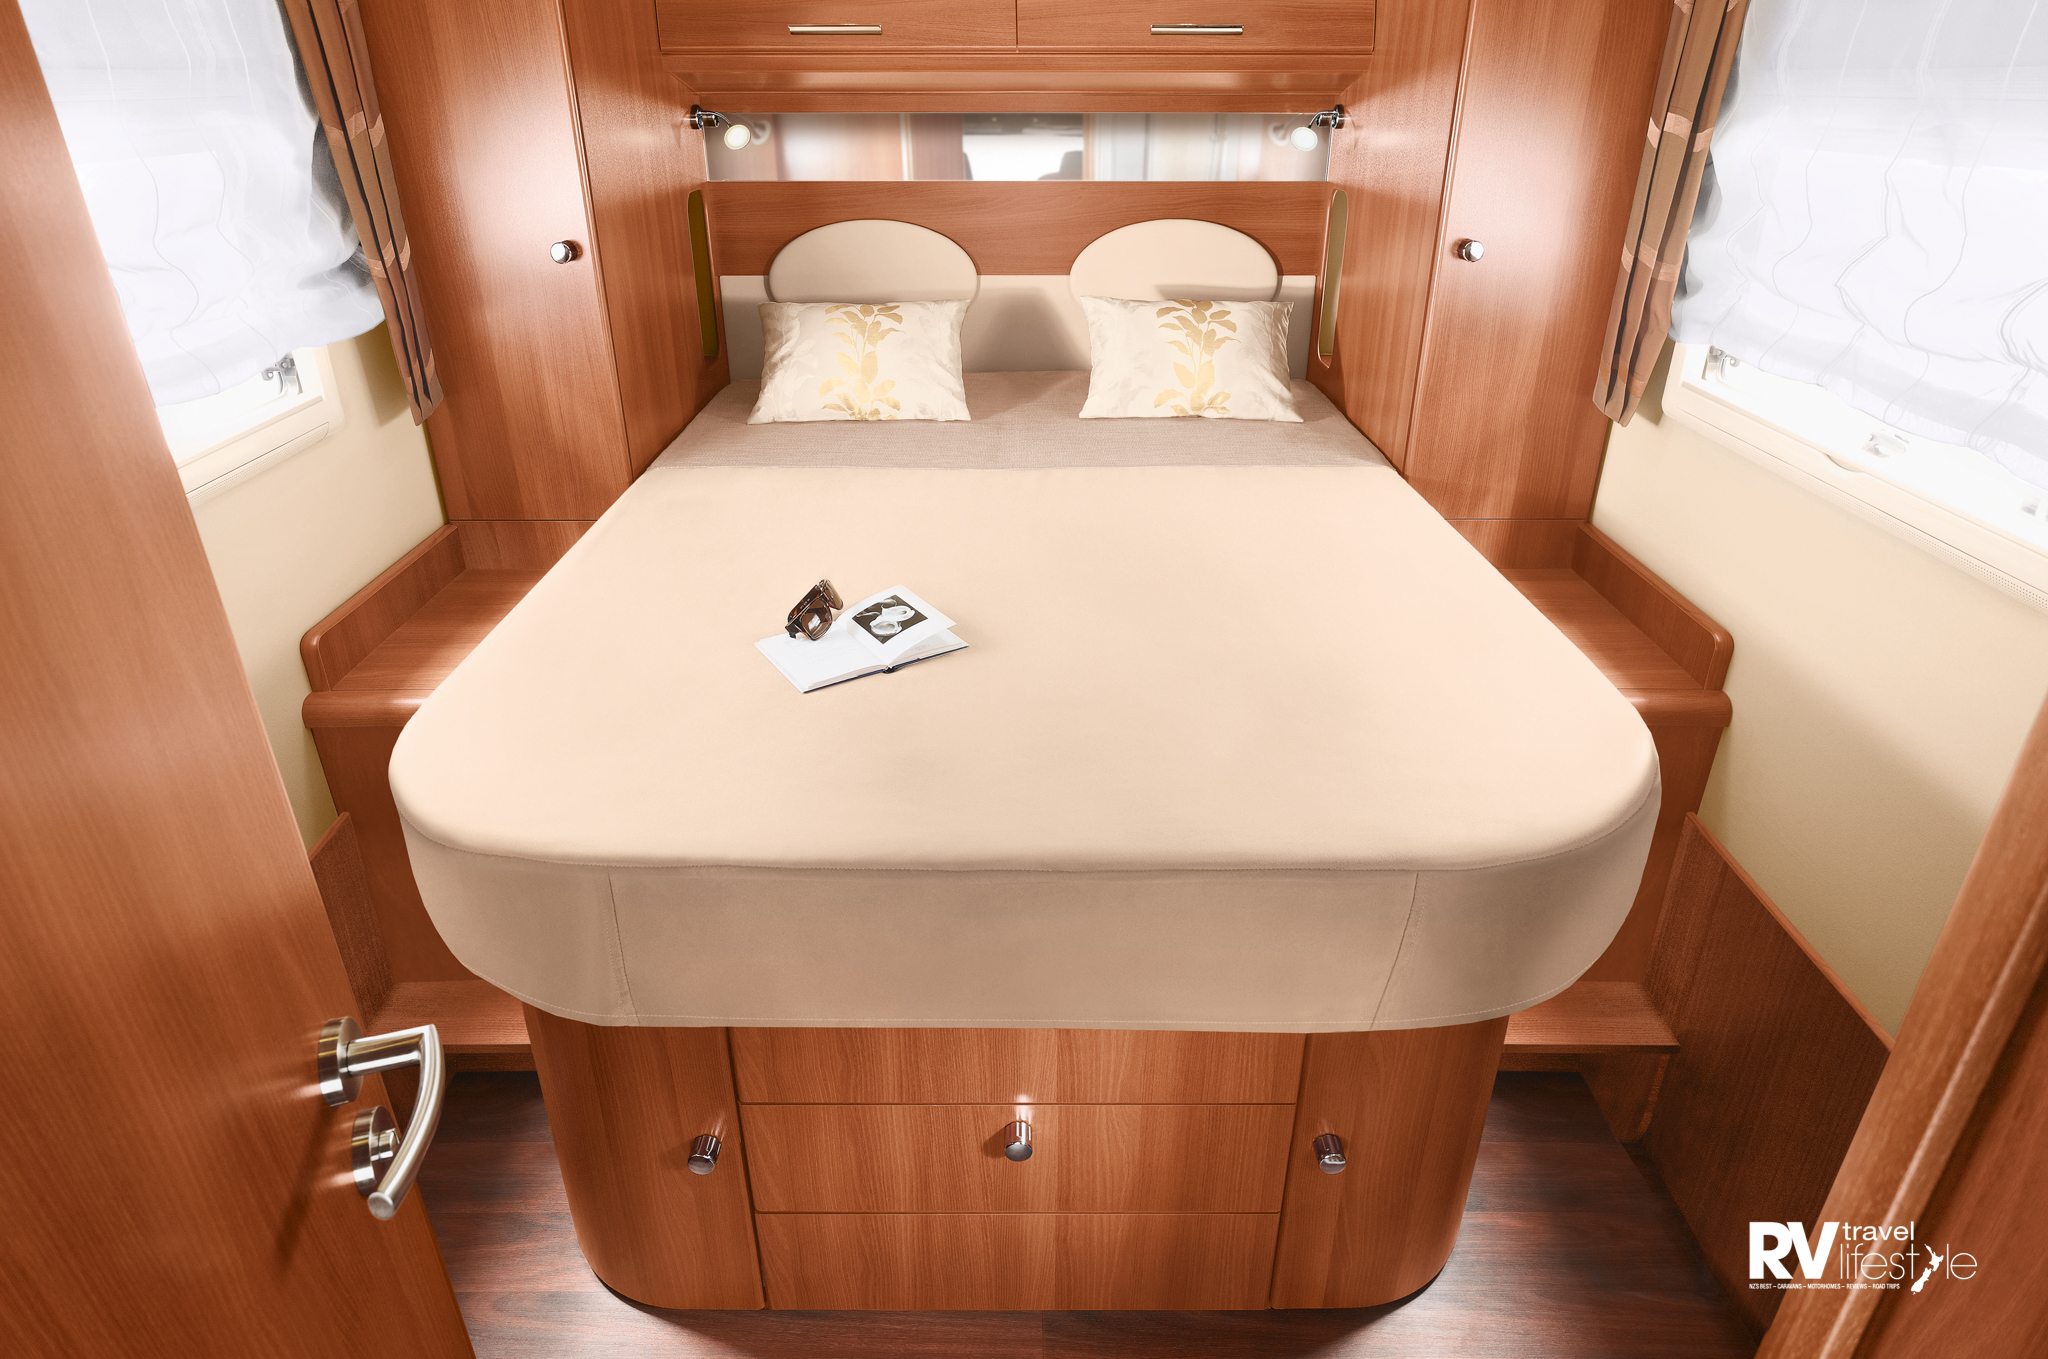 The queen-sized island bed has drawer and cupboards below, wardrobes and storage on each side. A privacy door between the en suite and shower area to create a changing area